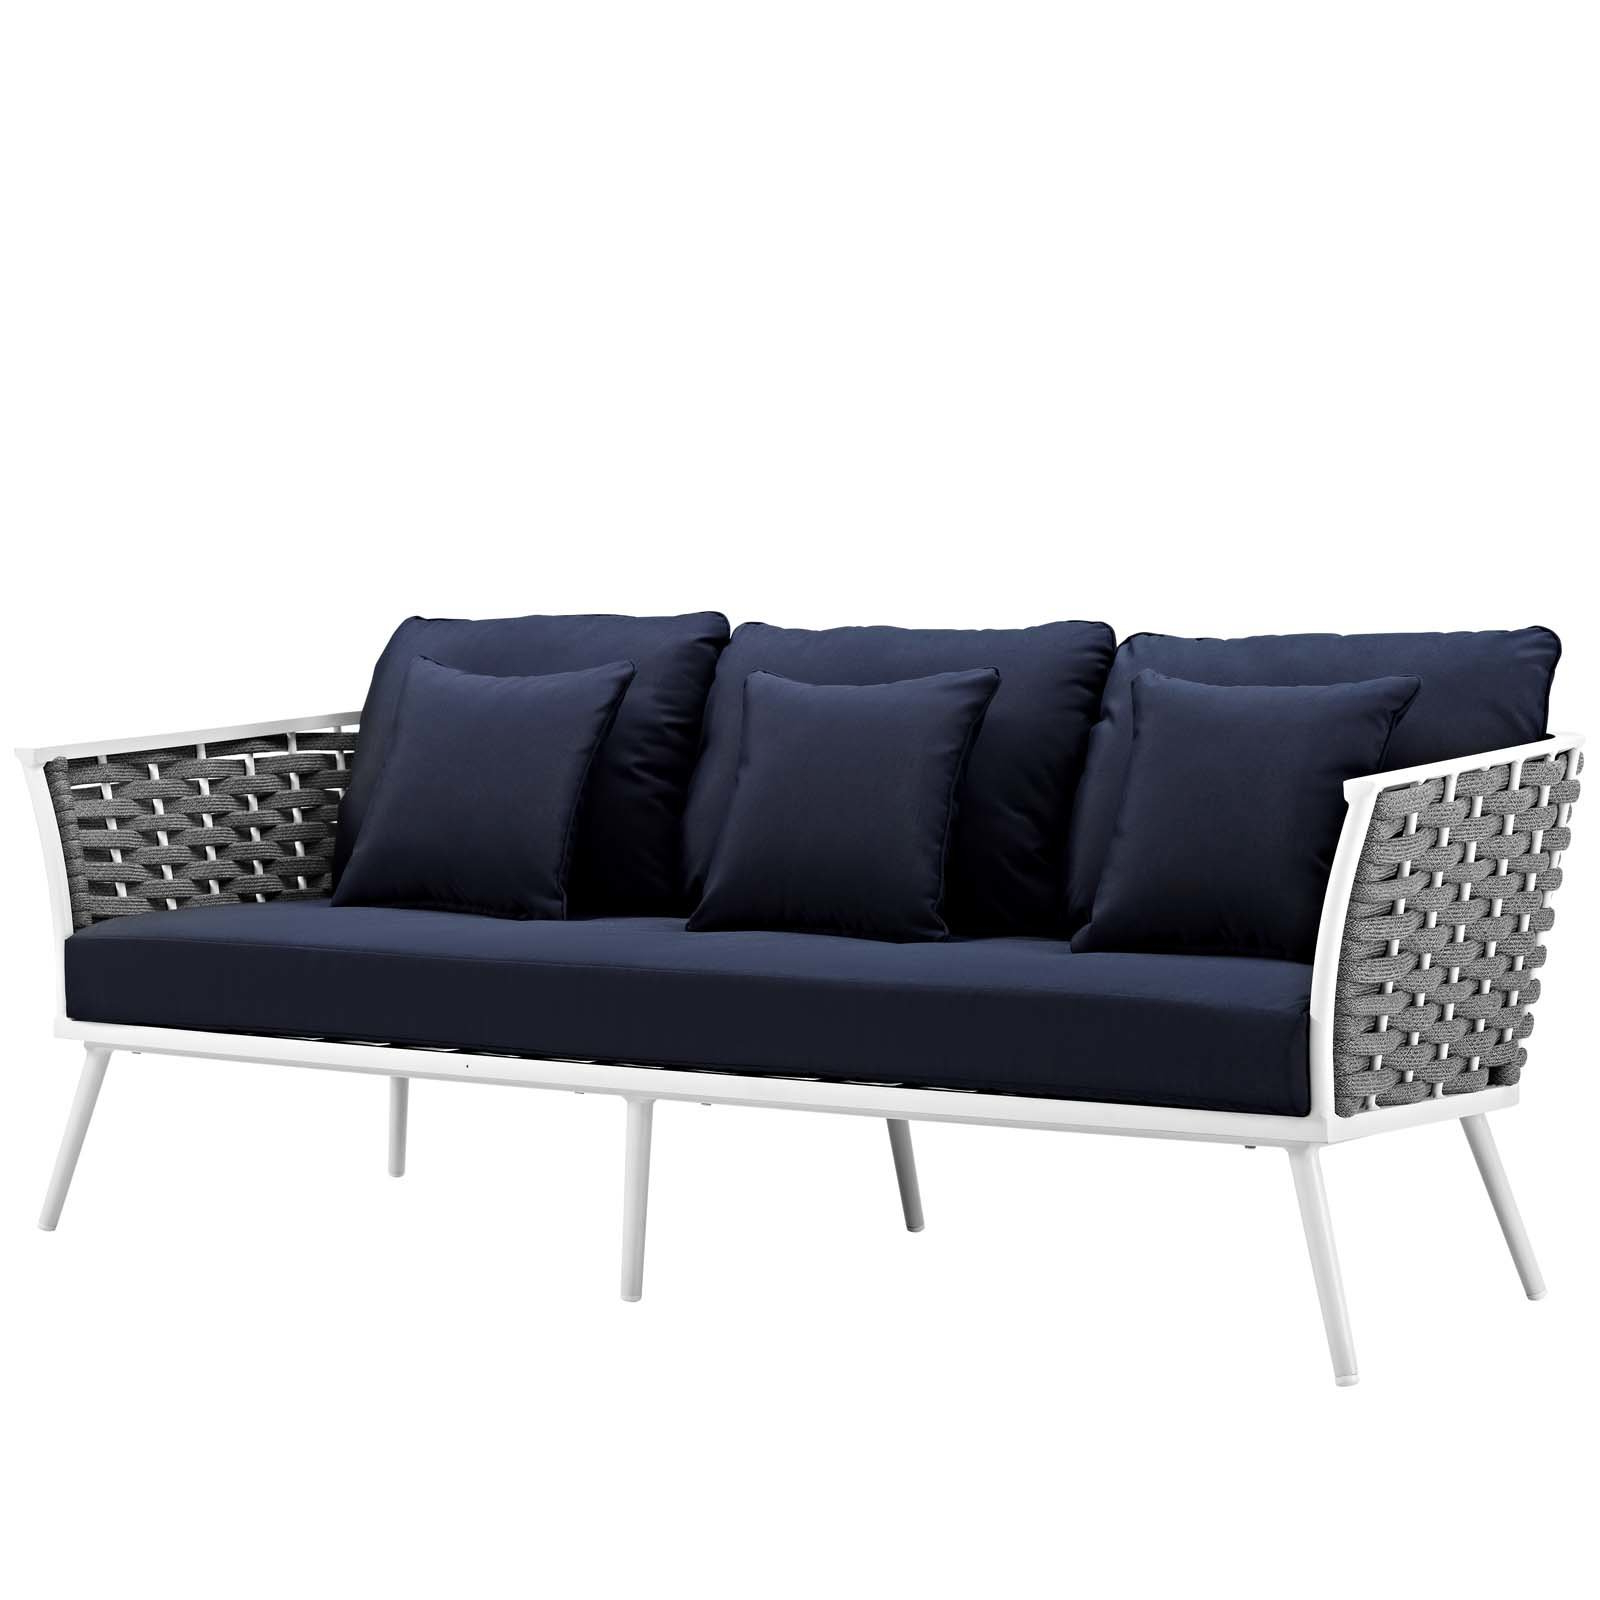 Fashionable Rossville Outdoor Patio Sofa With Cushions Inside Stapleton Wicker Resin Patio Sofas With Cushions (View 5 of 20)